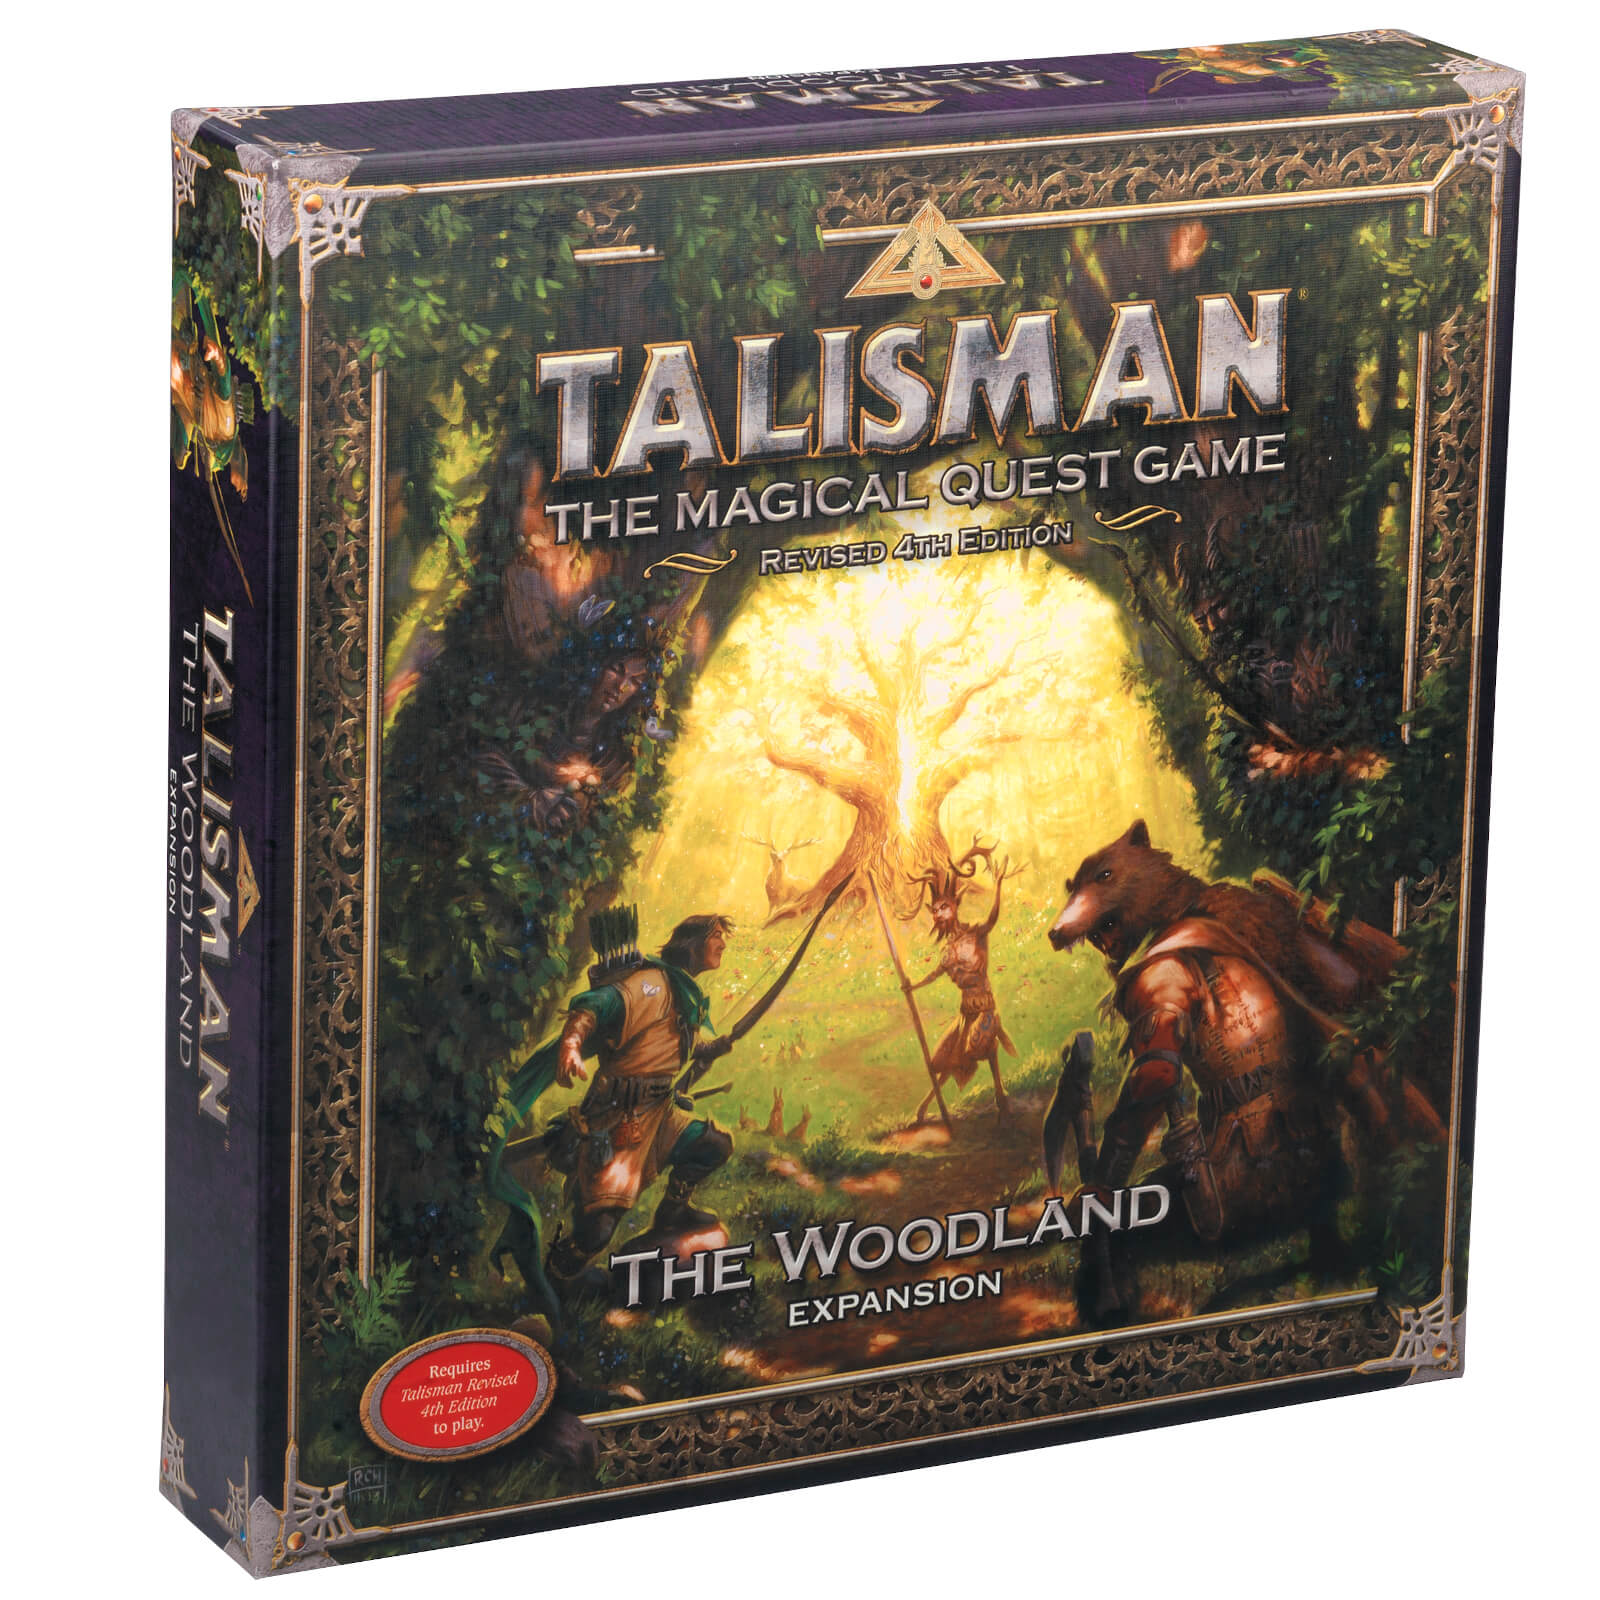 Image of Talisman Board Game 4th Edition The Woodland Expansion